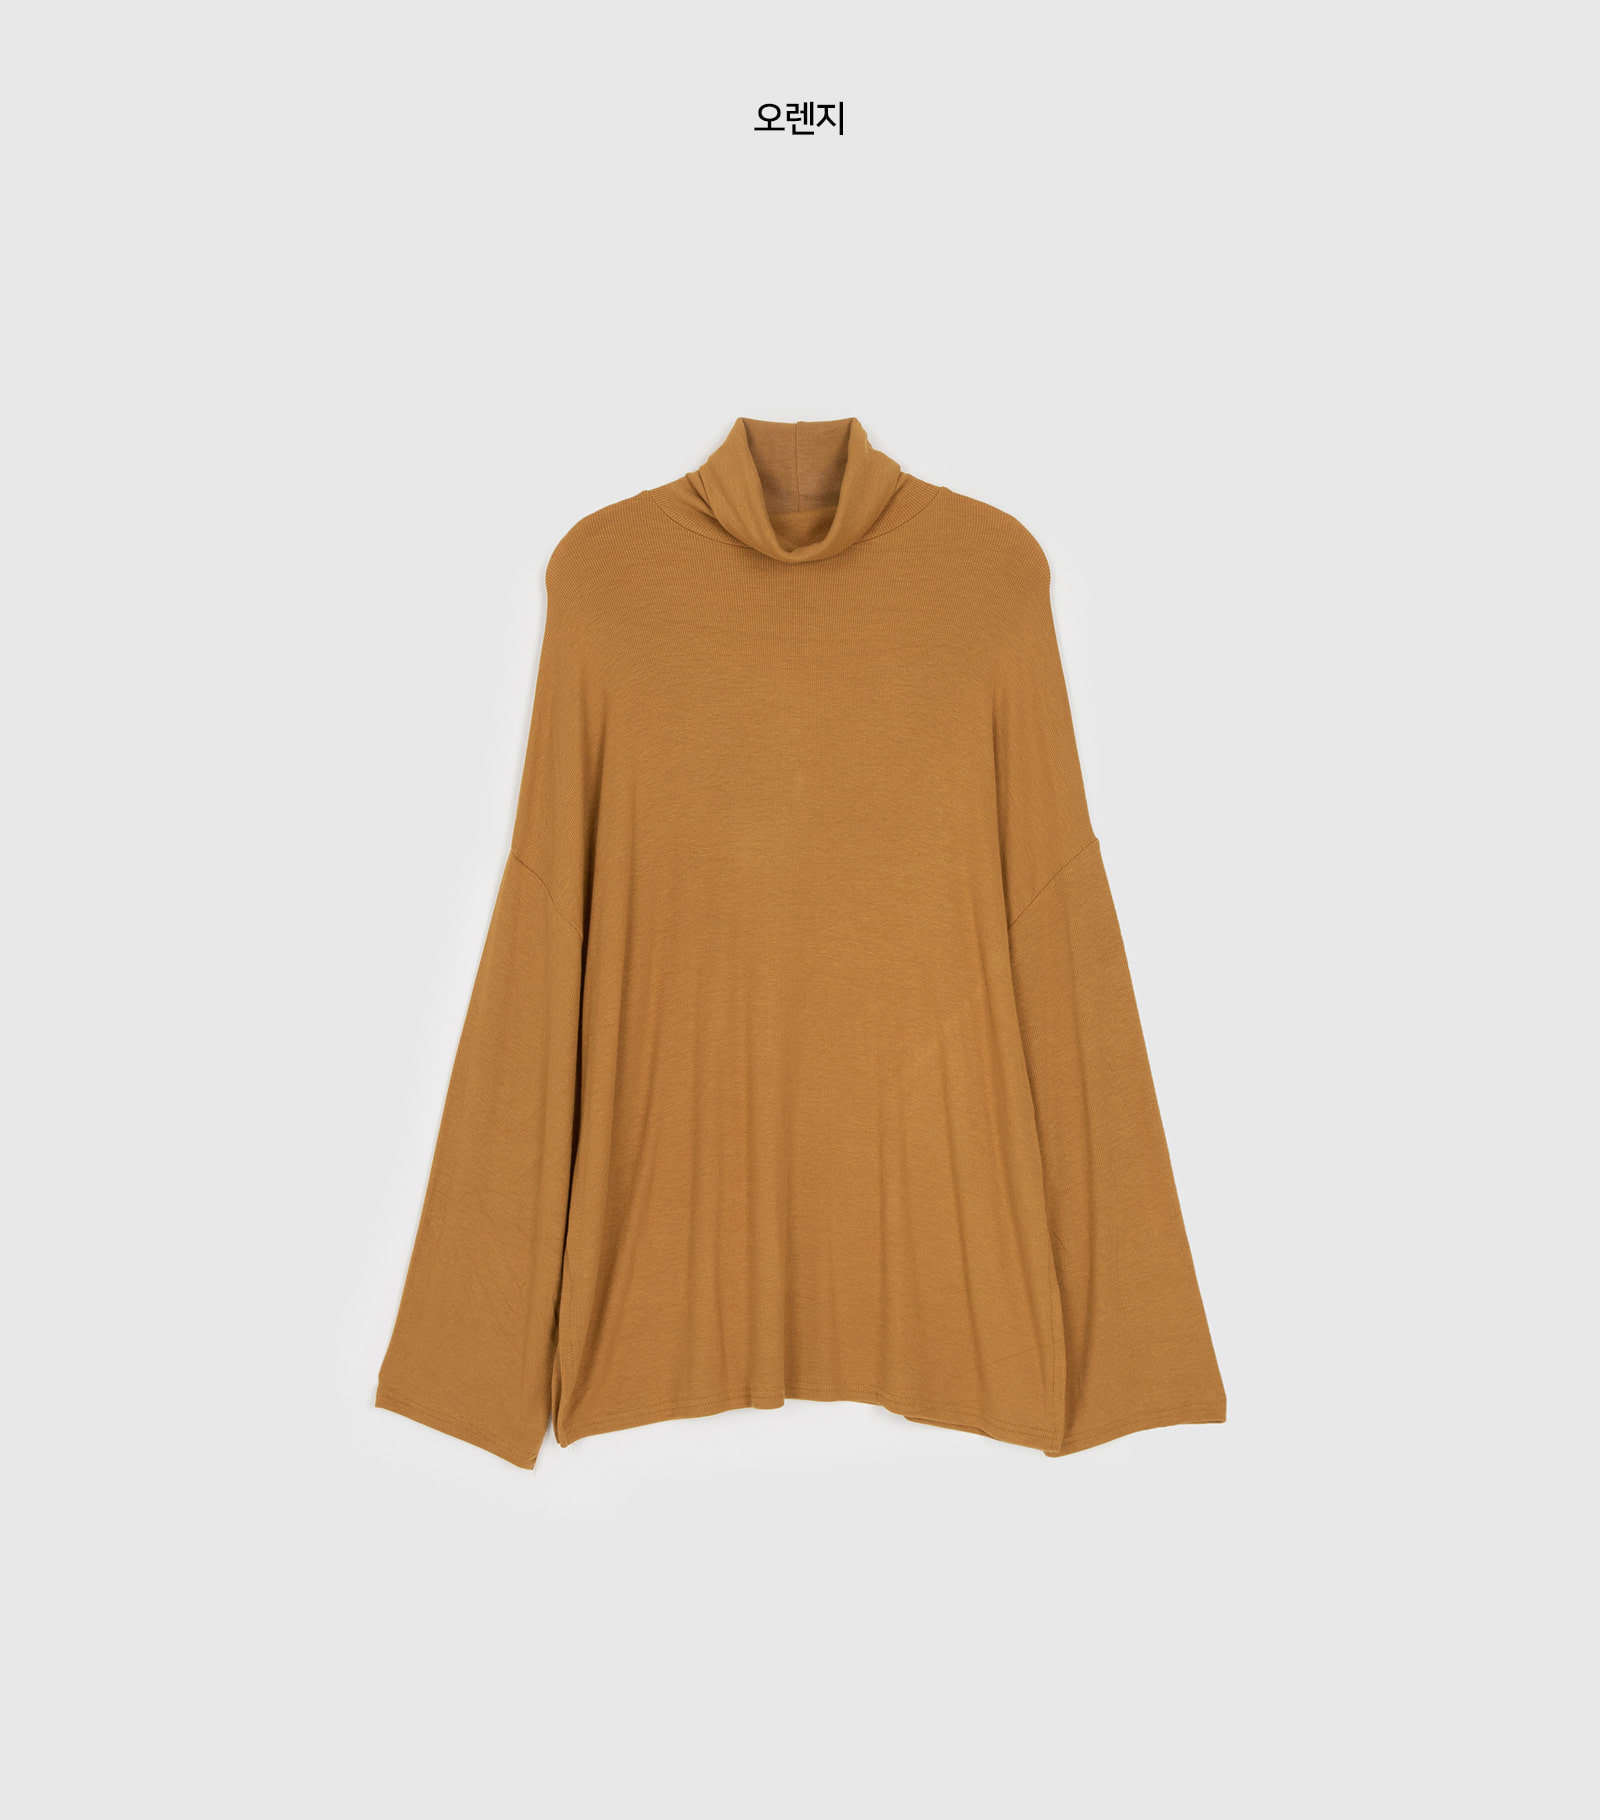 Over simple turtleneck T-shirt